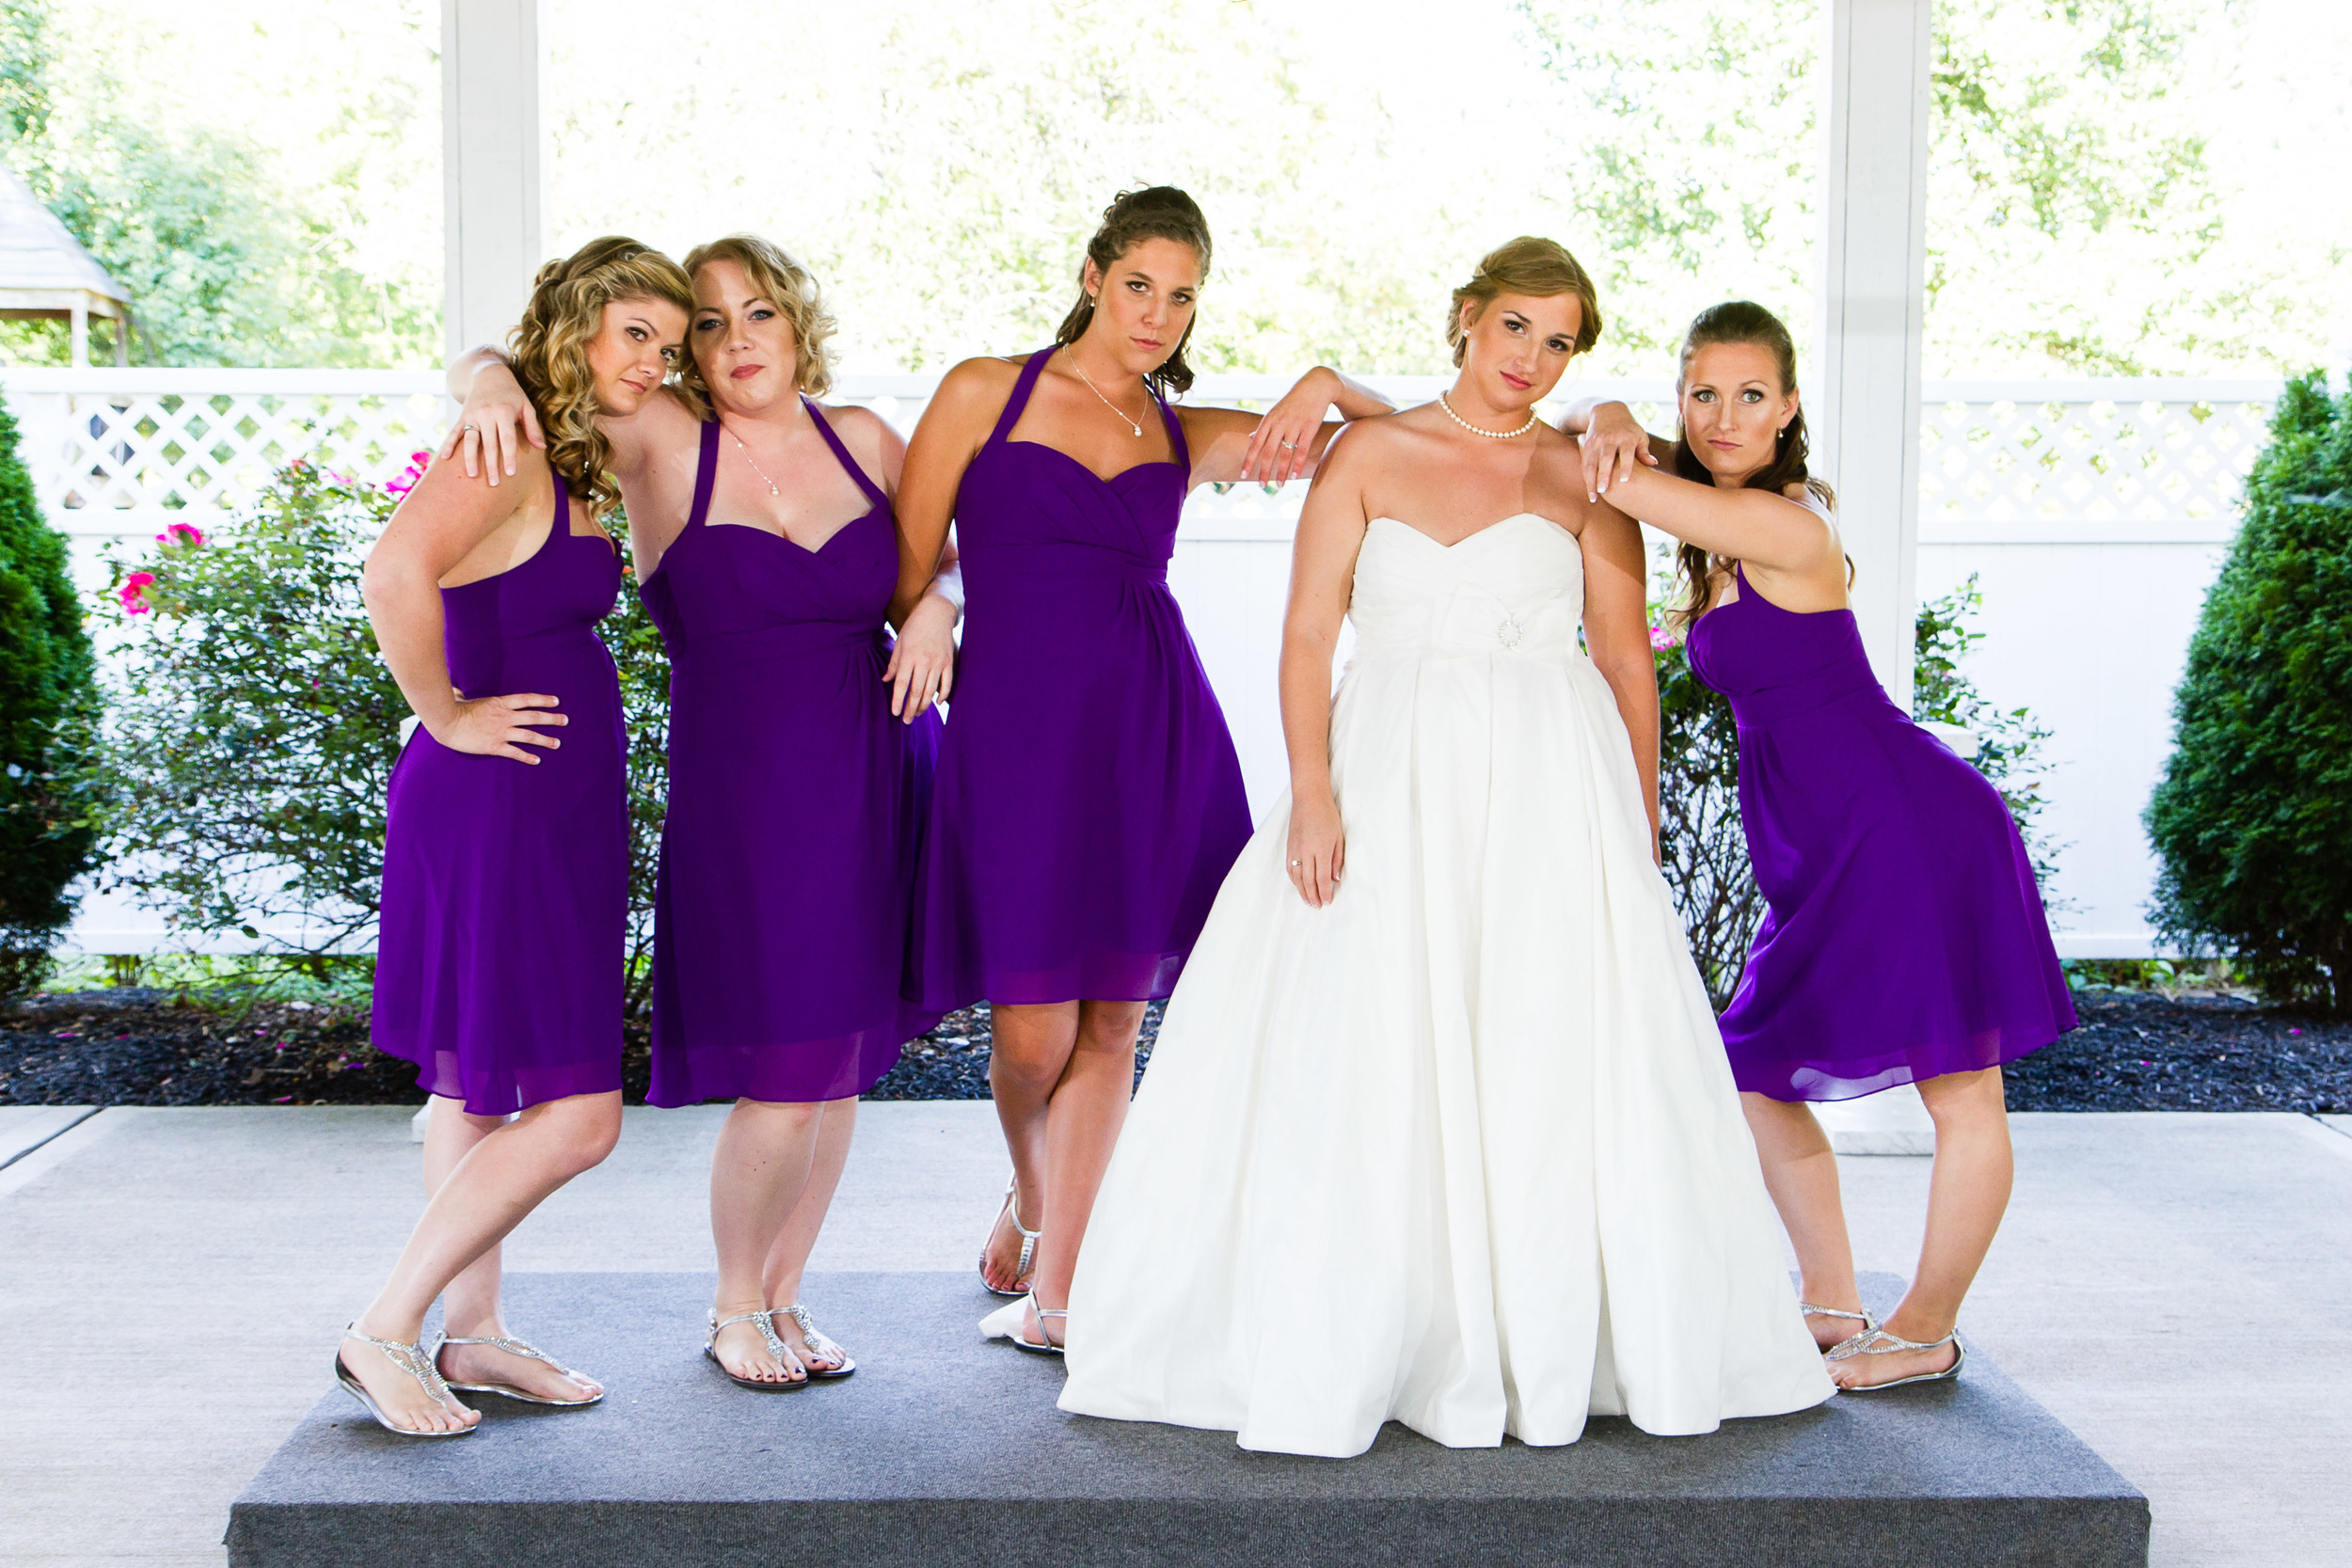 Wedding photograph of a bride with bridesmaids